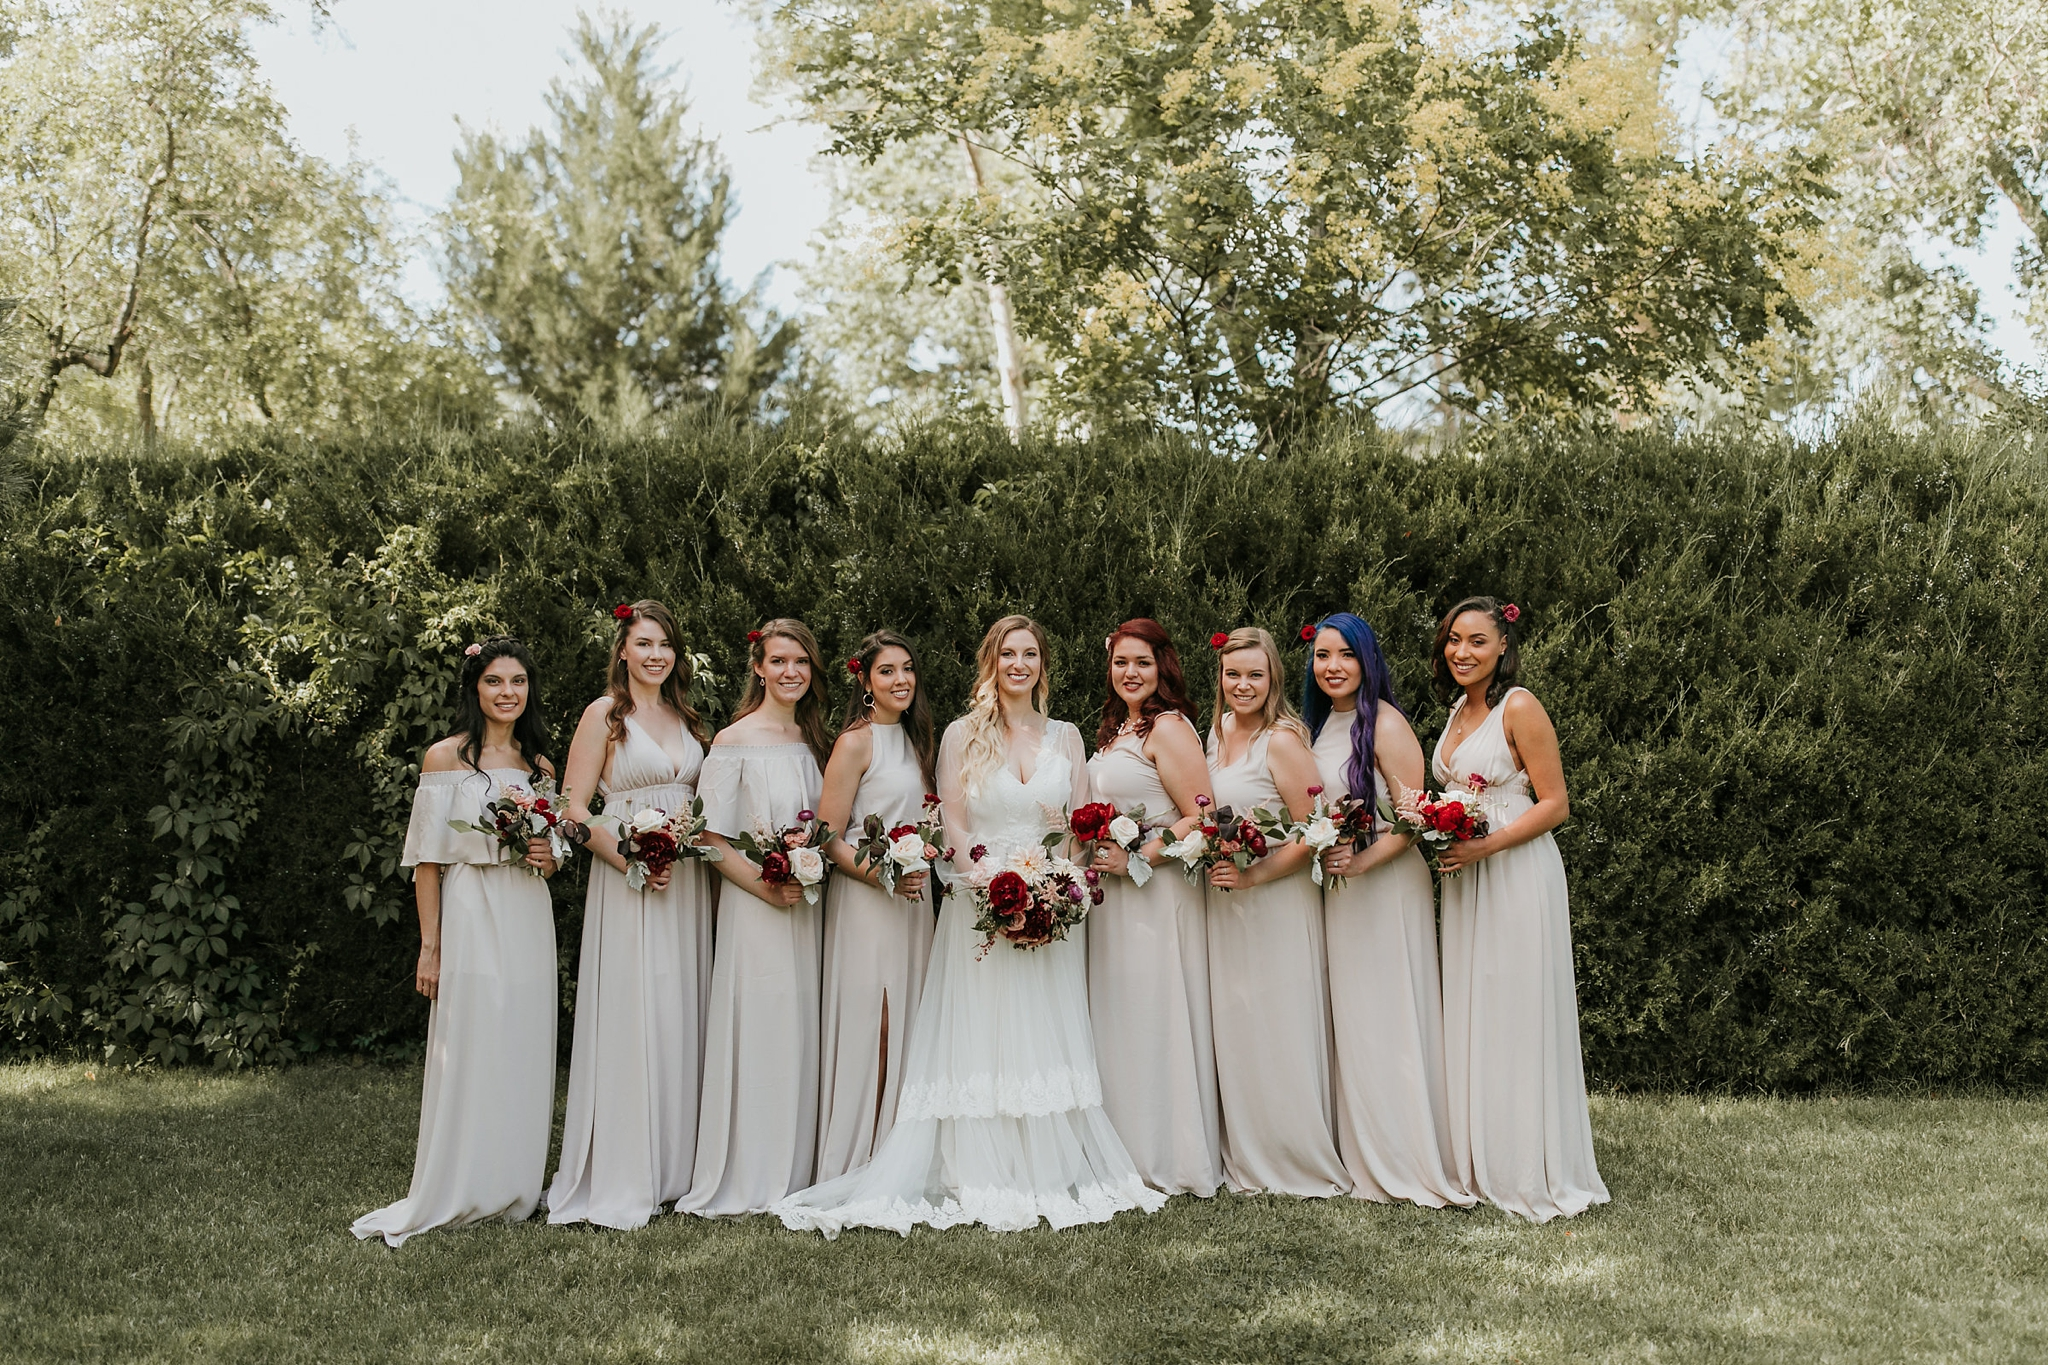 Alicia+lucia+photography+-+albuquerque+wedding+photographer+-+santa+fe+wedding+photography+-+new+mexico+wedding+photographer+-+new+mexico+wedding+-+new+mexico+wedding+-+colorado+wedding+-+bridesmaids+-+bridesmaid+style_0034.jpg